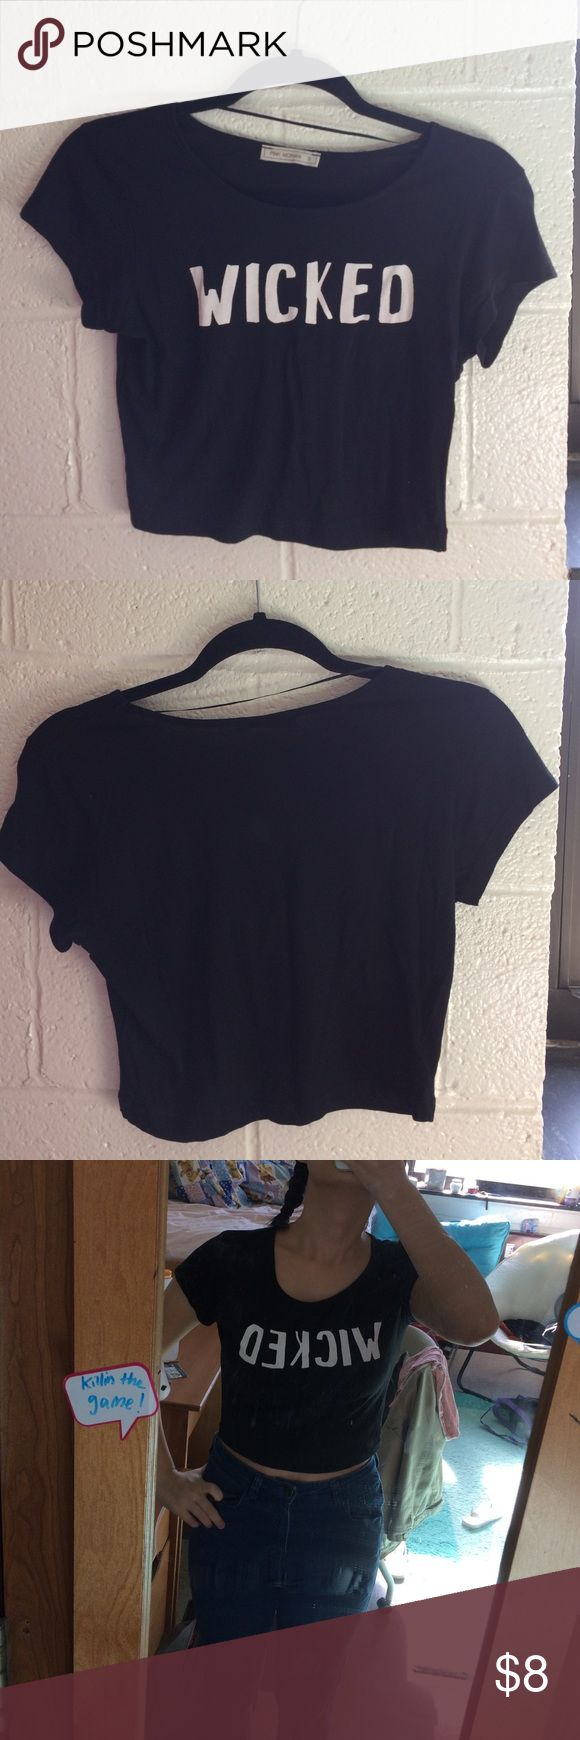 """""""wicked"""" black crop top Worn only once or twice, super cute! Says Wicked on the front, other than that just a normal black crop tshirt top. (This was bought from a store in Greece called Pink Woman). pink woman Tops Crop Tops"""